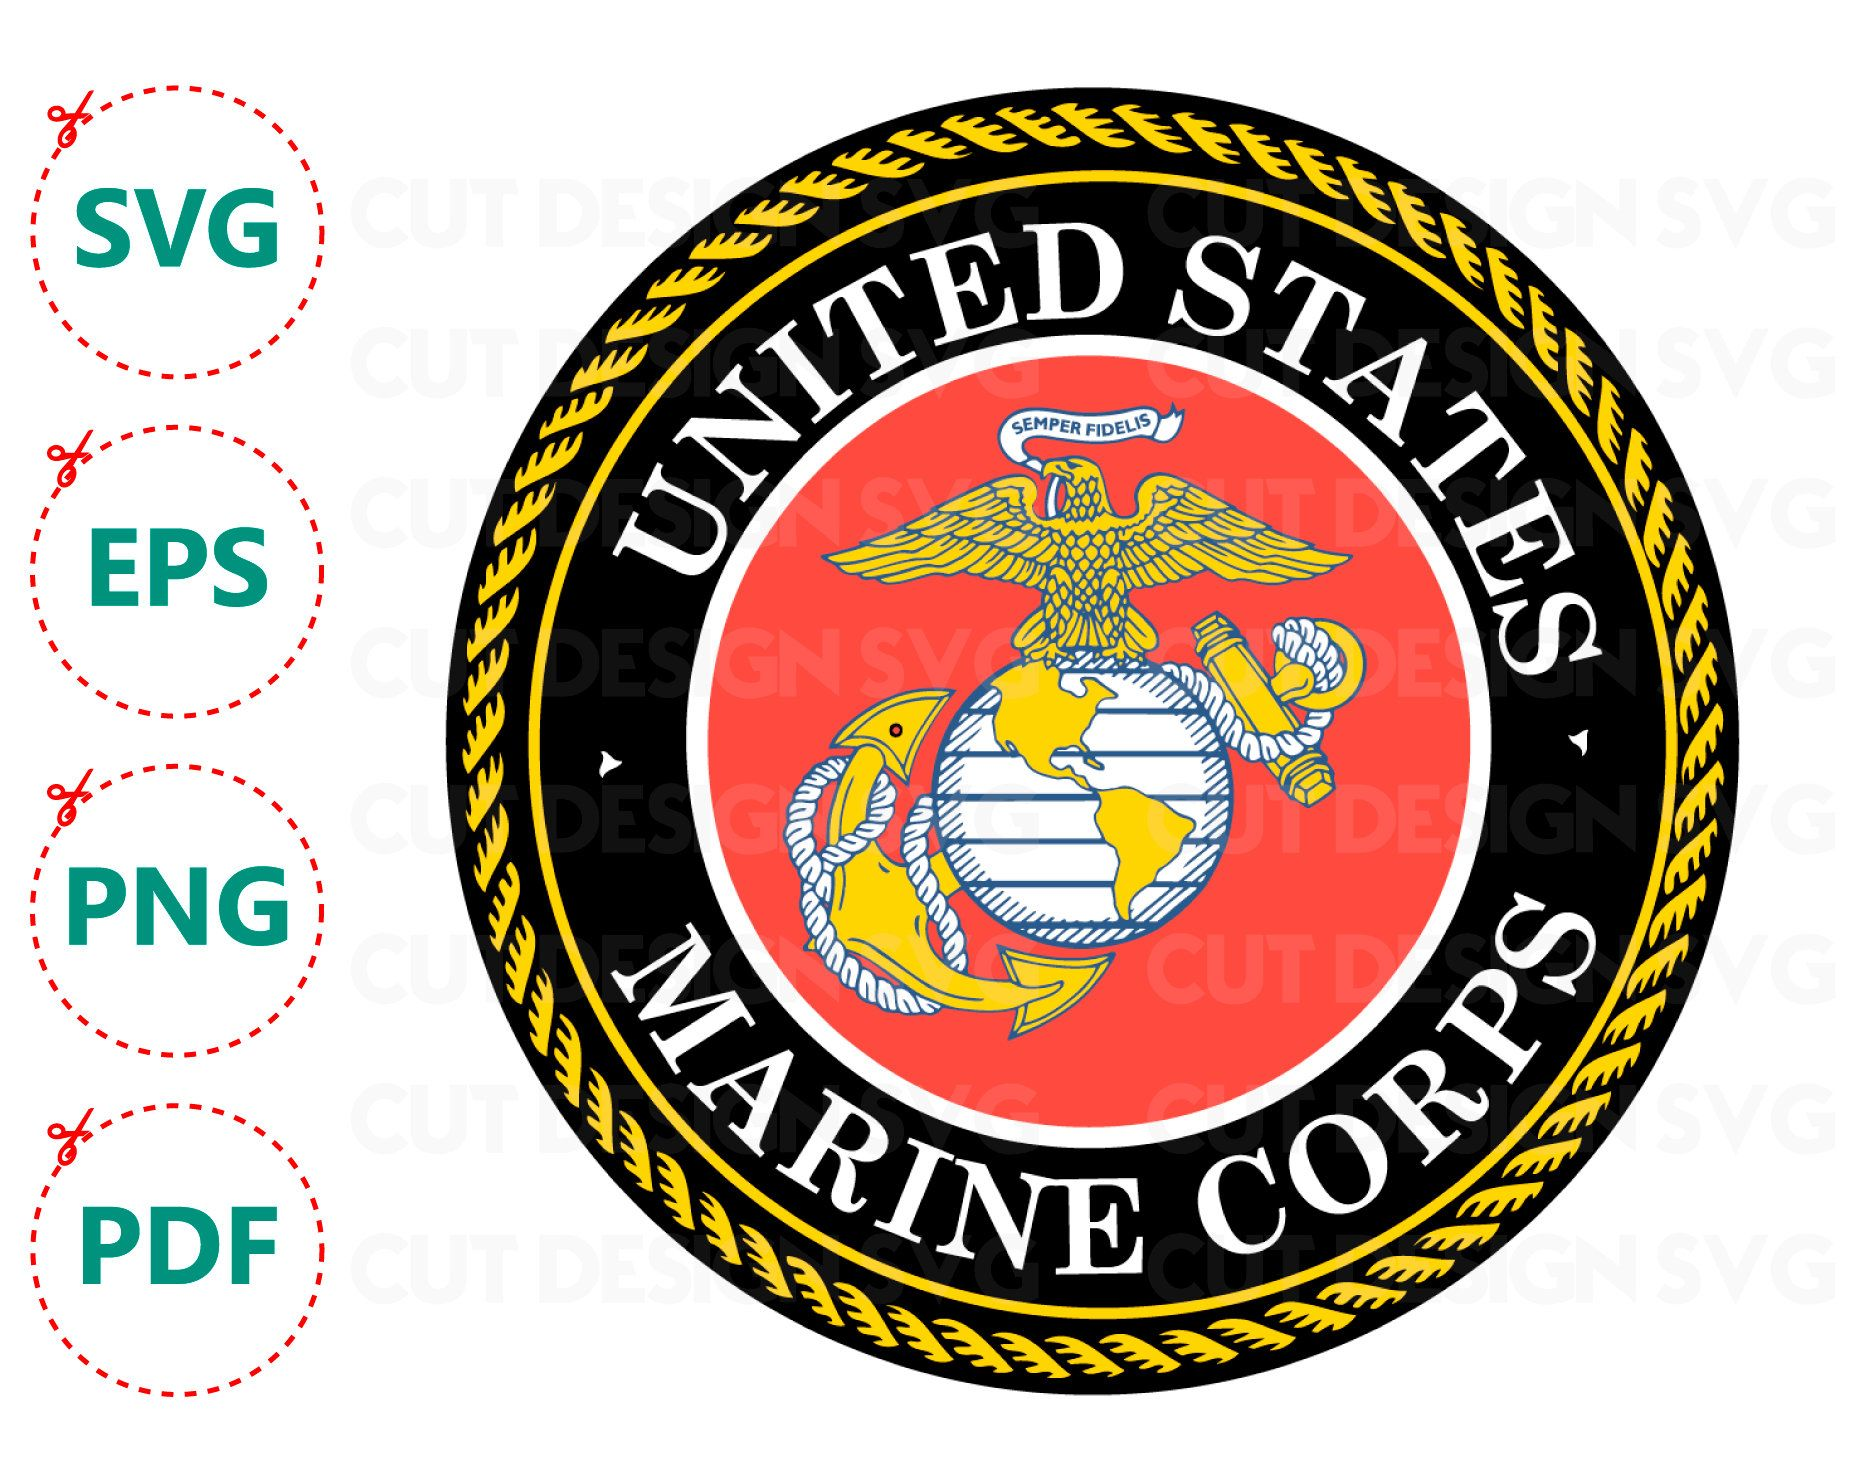 marine corps logo svg vector and clip art inspiration u2022 rh clipartsource today marine corps league logo vector marine corps logo vector art